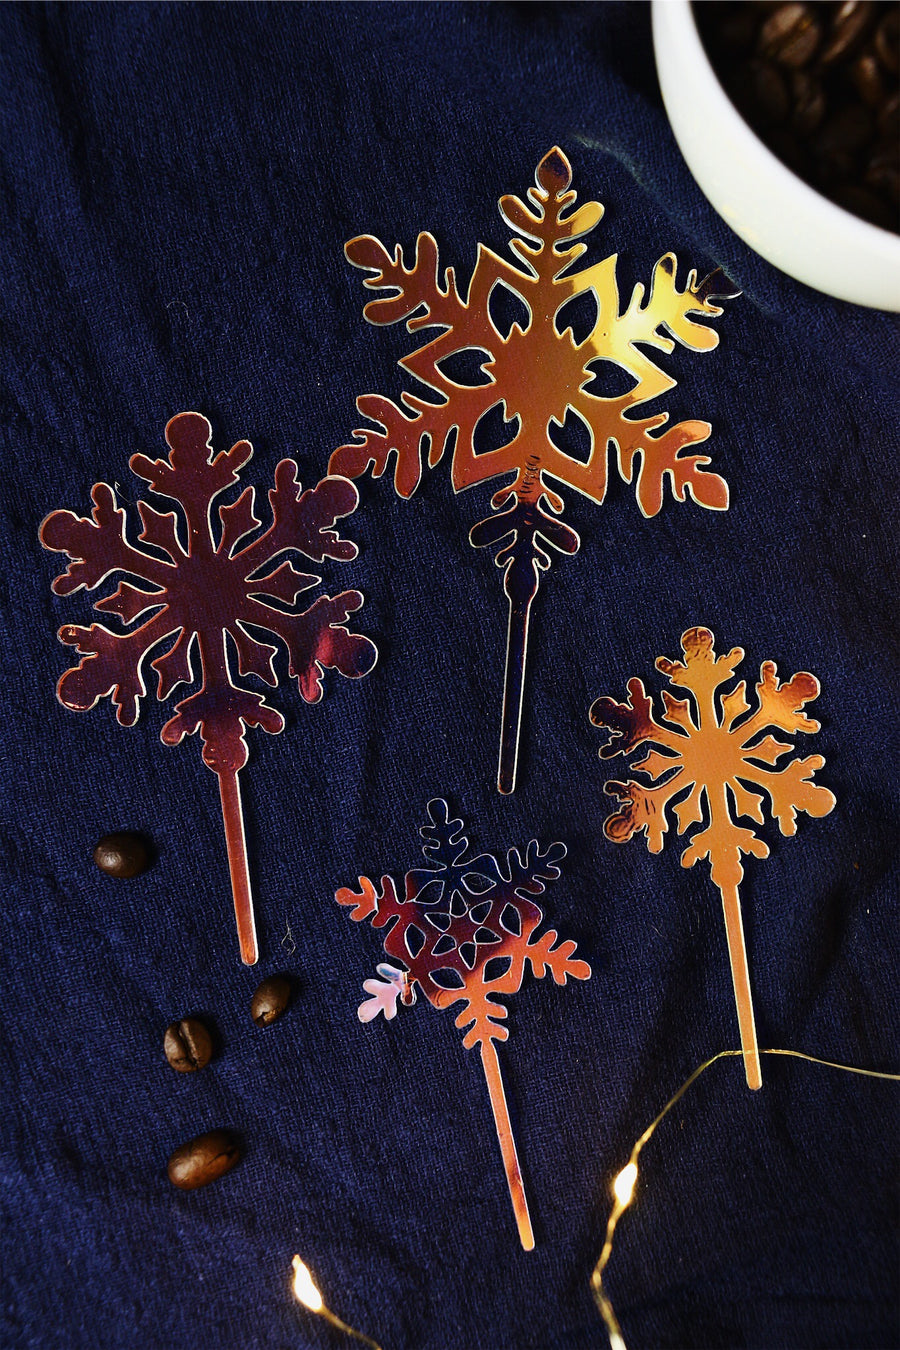 Snowflakes Galore! Cake Toppers (Set of 4)